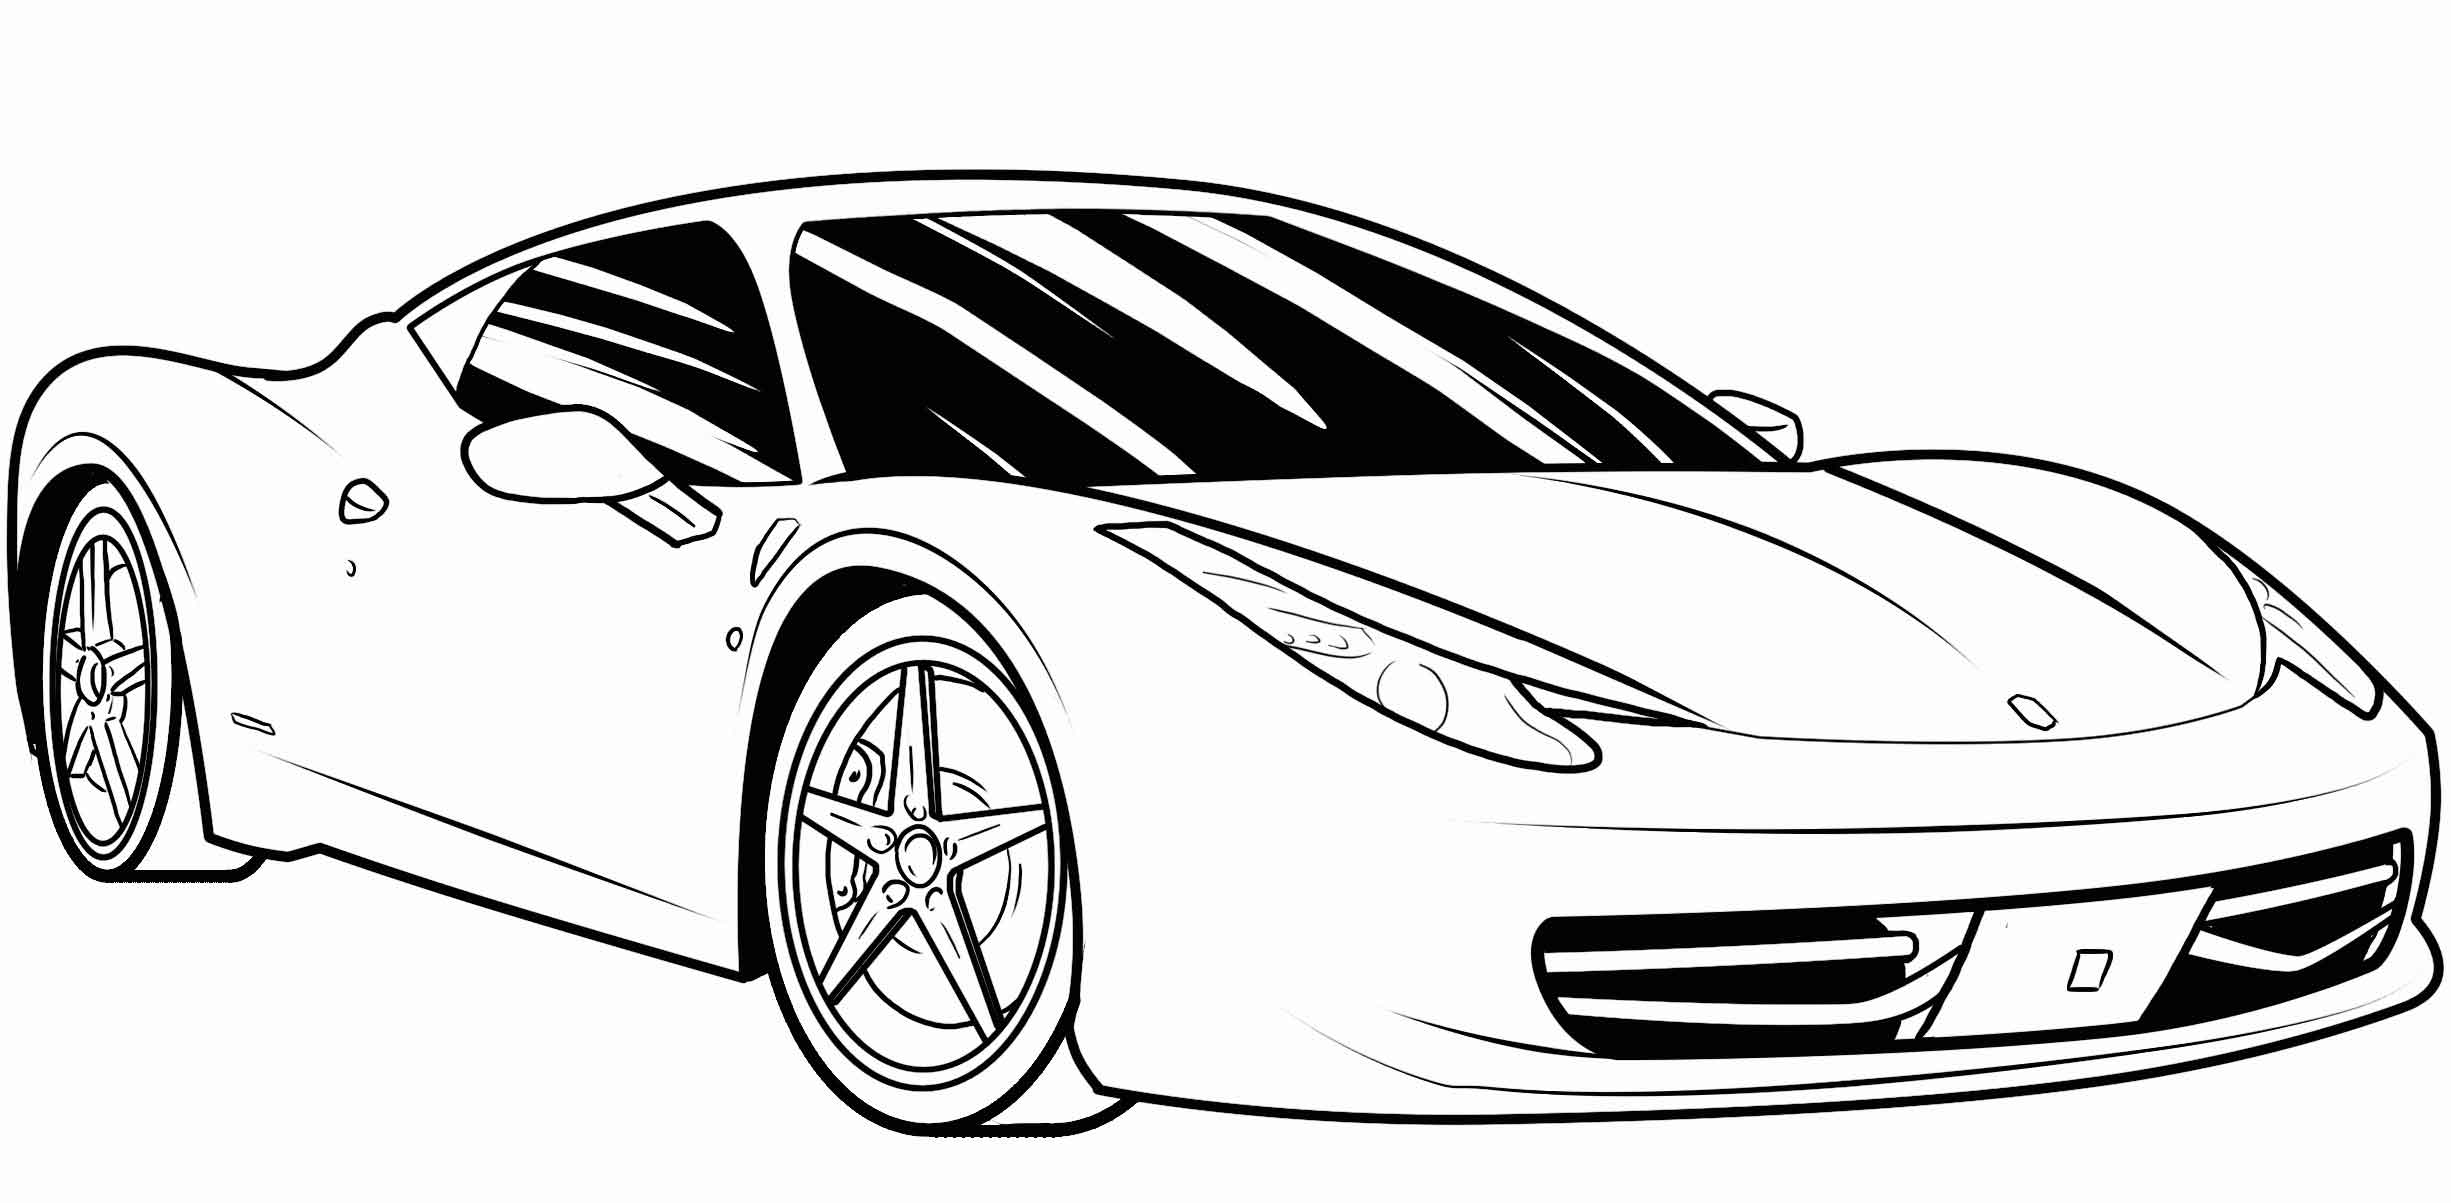 free cars coloring pages free printable cars coloring pages for kids cool2bkids pages coloring free cars 1 1